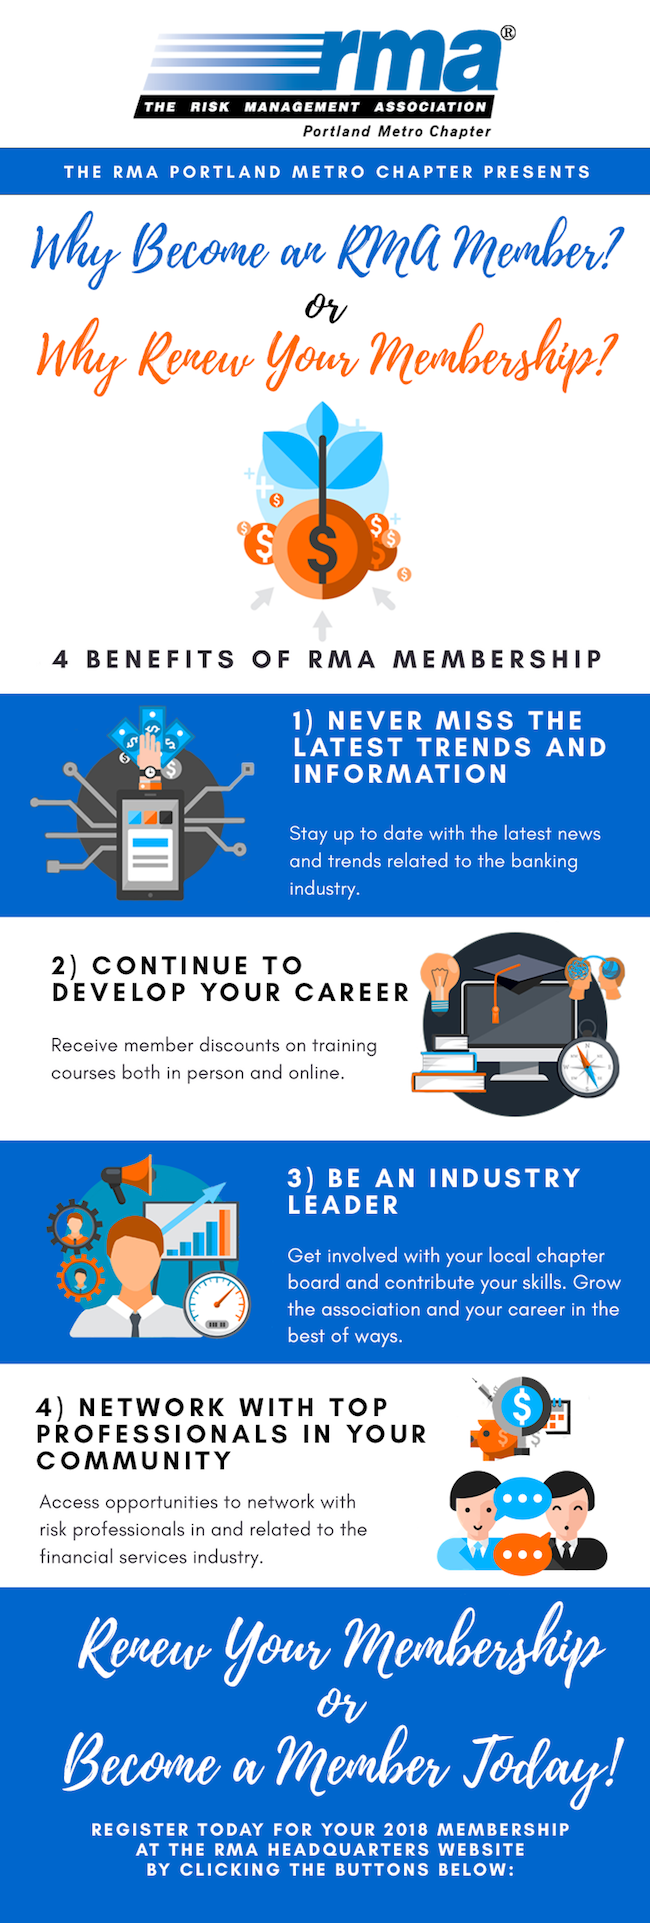 Why Become an RMA Member? Why Renew Your Membership?